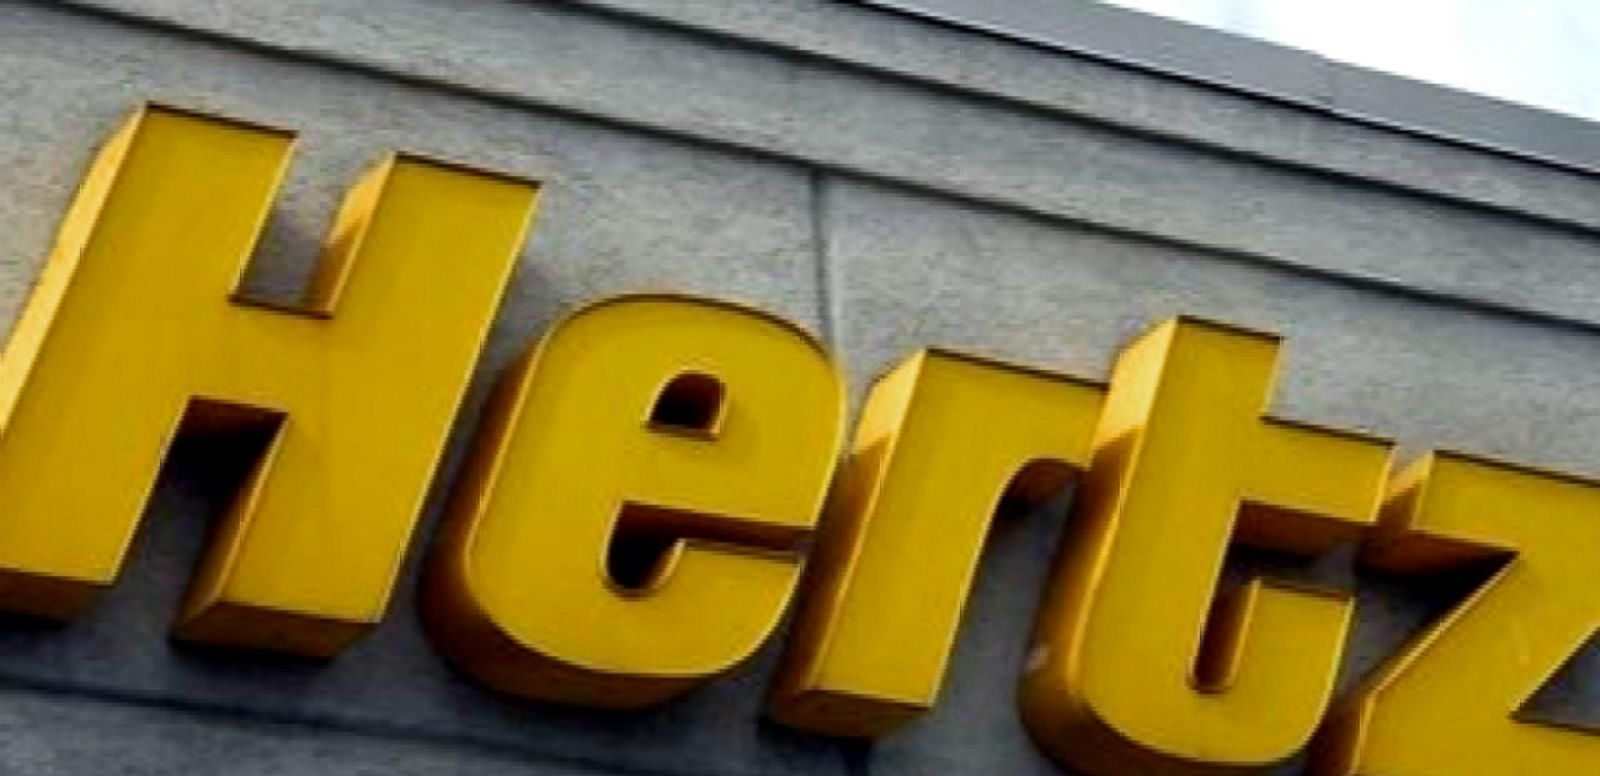 VIDEO: Hertz Revving Higher as Markets Soar